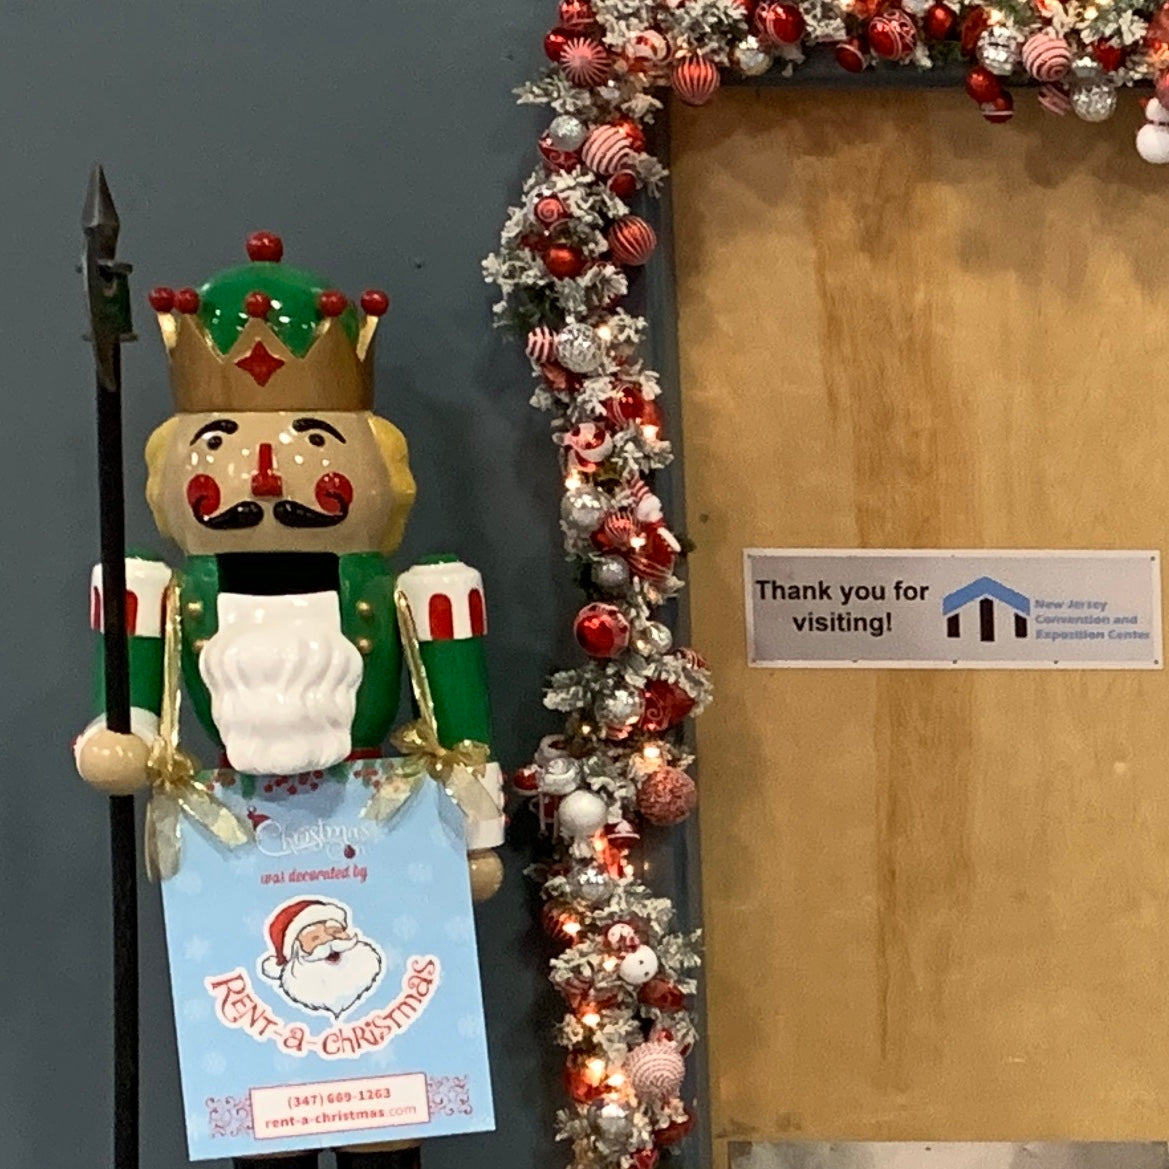 A lifesize nutcracker with a Rent-A-Christmas sign draped around his neck, and decorated garland